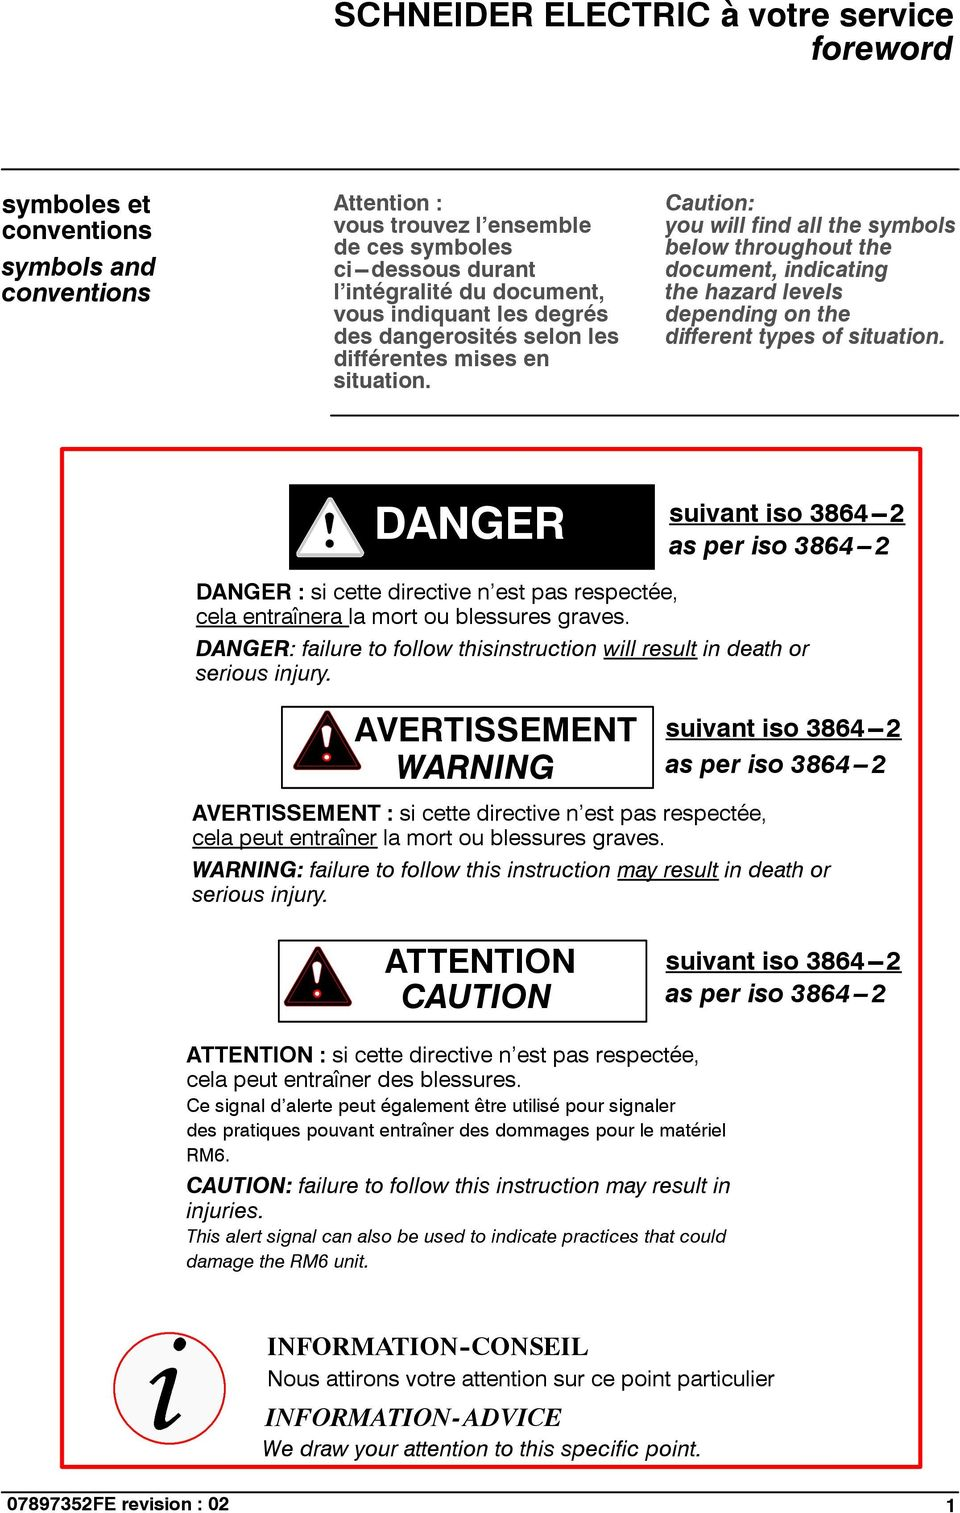 Caution: you will find all the symbols below throughout the document, indicating the hazard levels depending on the different types of situation.